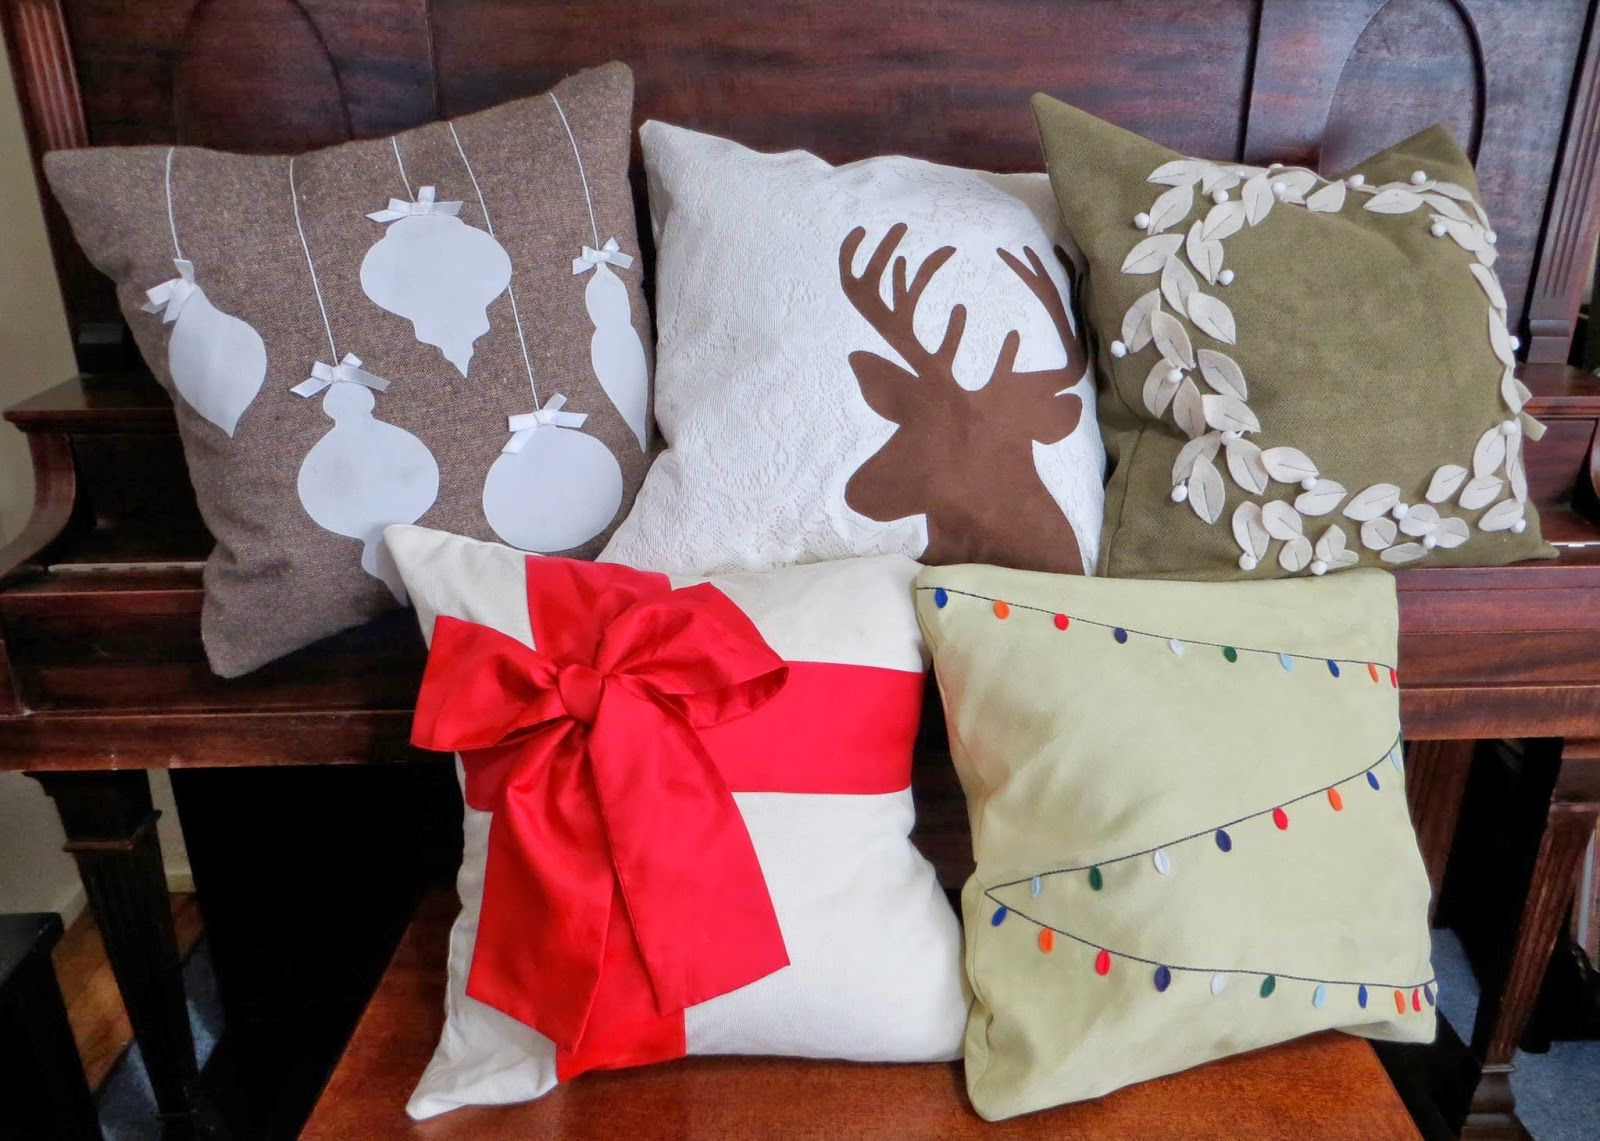 Decorating For Christmas Is Easy With These Pillow Covers They